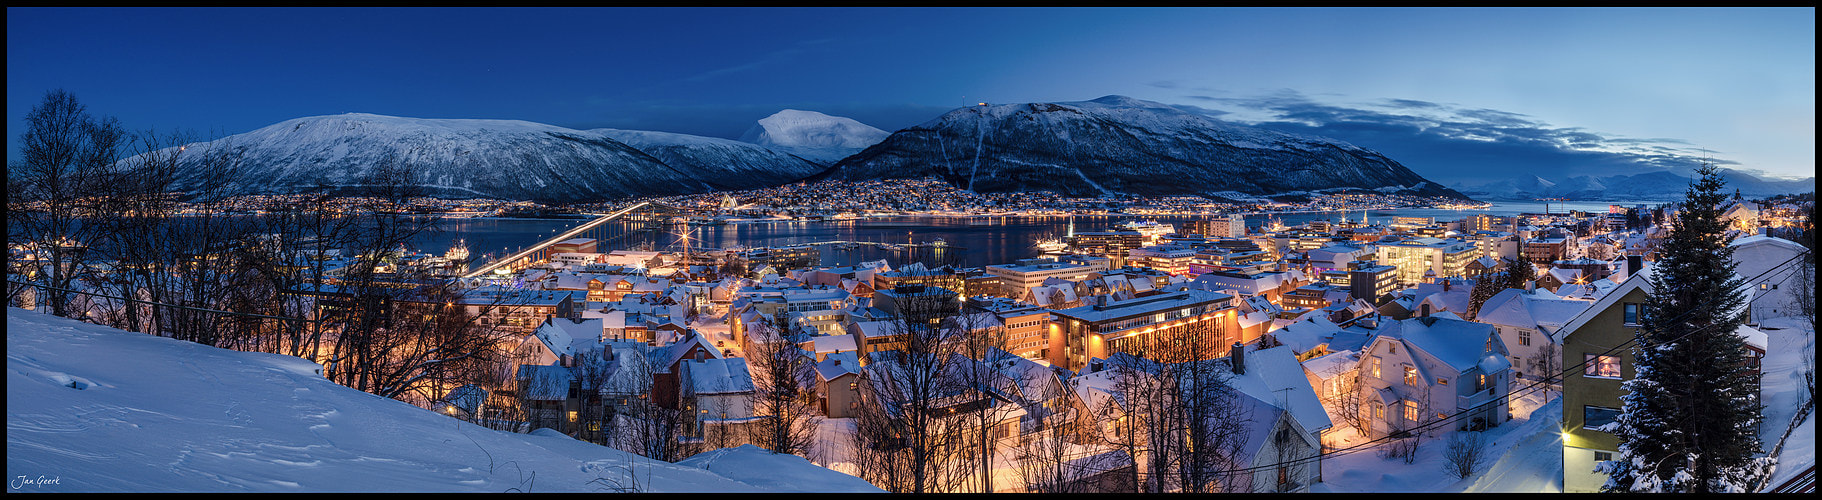 Photograph Arctic City by Jan Geerk on 500px